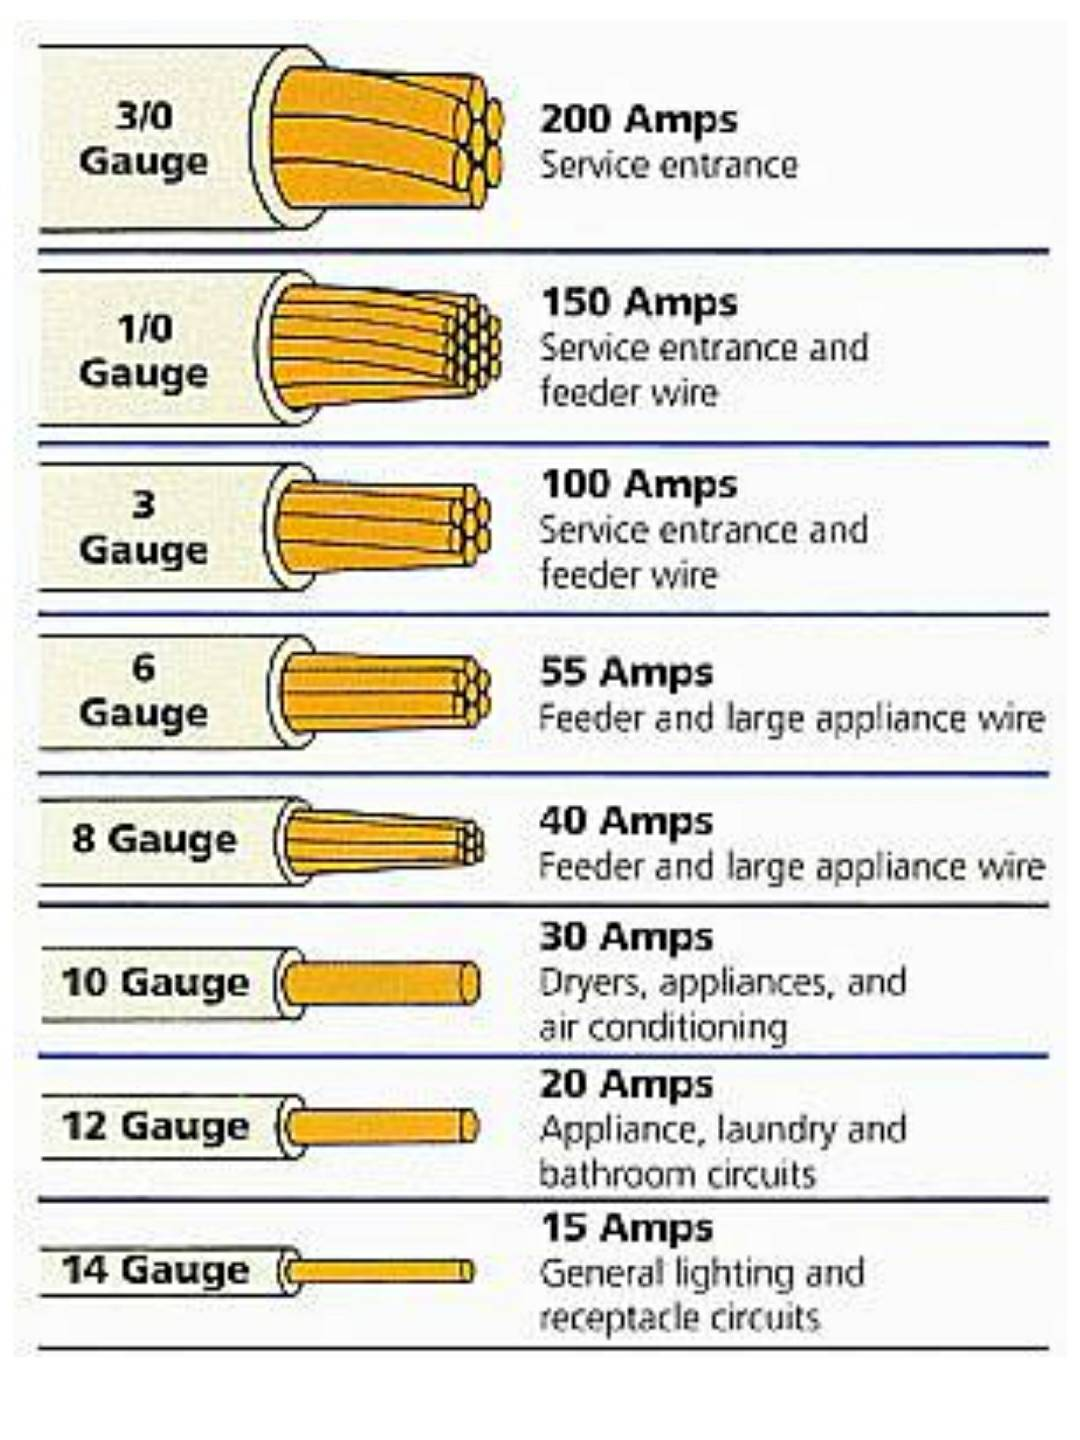 Cool 200 Amp Service Wire Size Contemporary - Electrical and Wiring ...